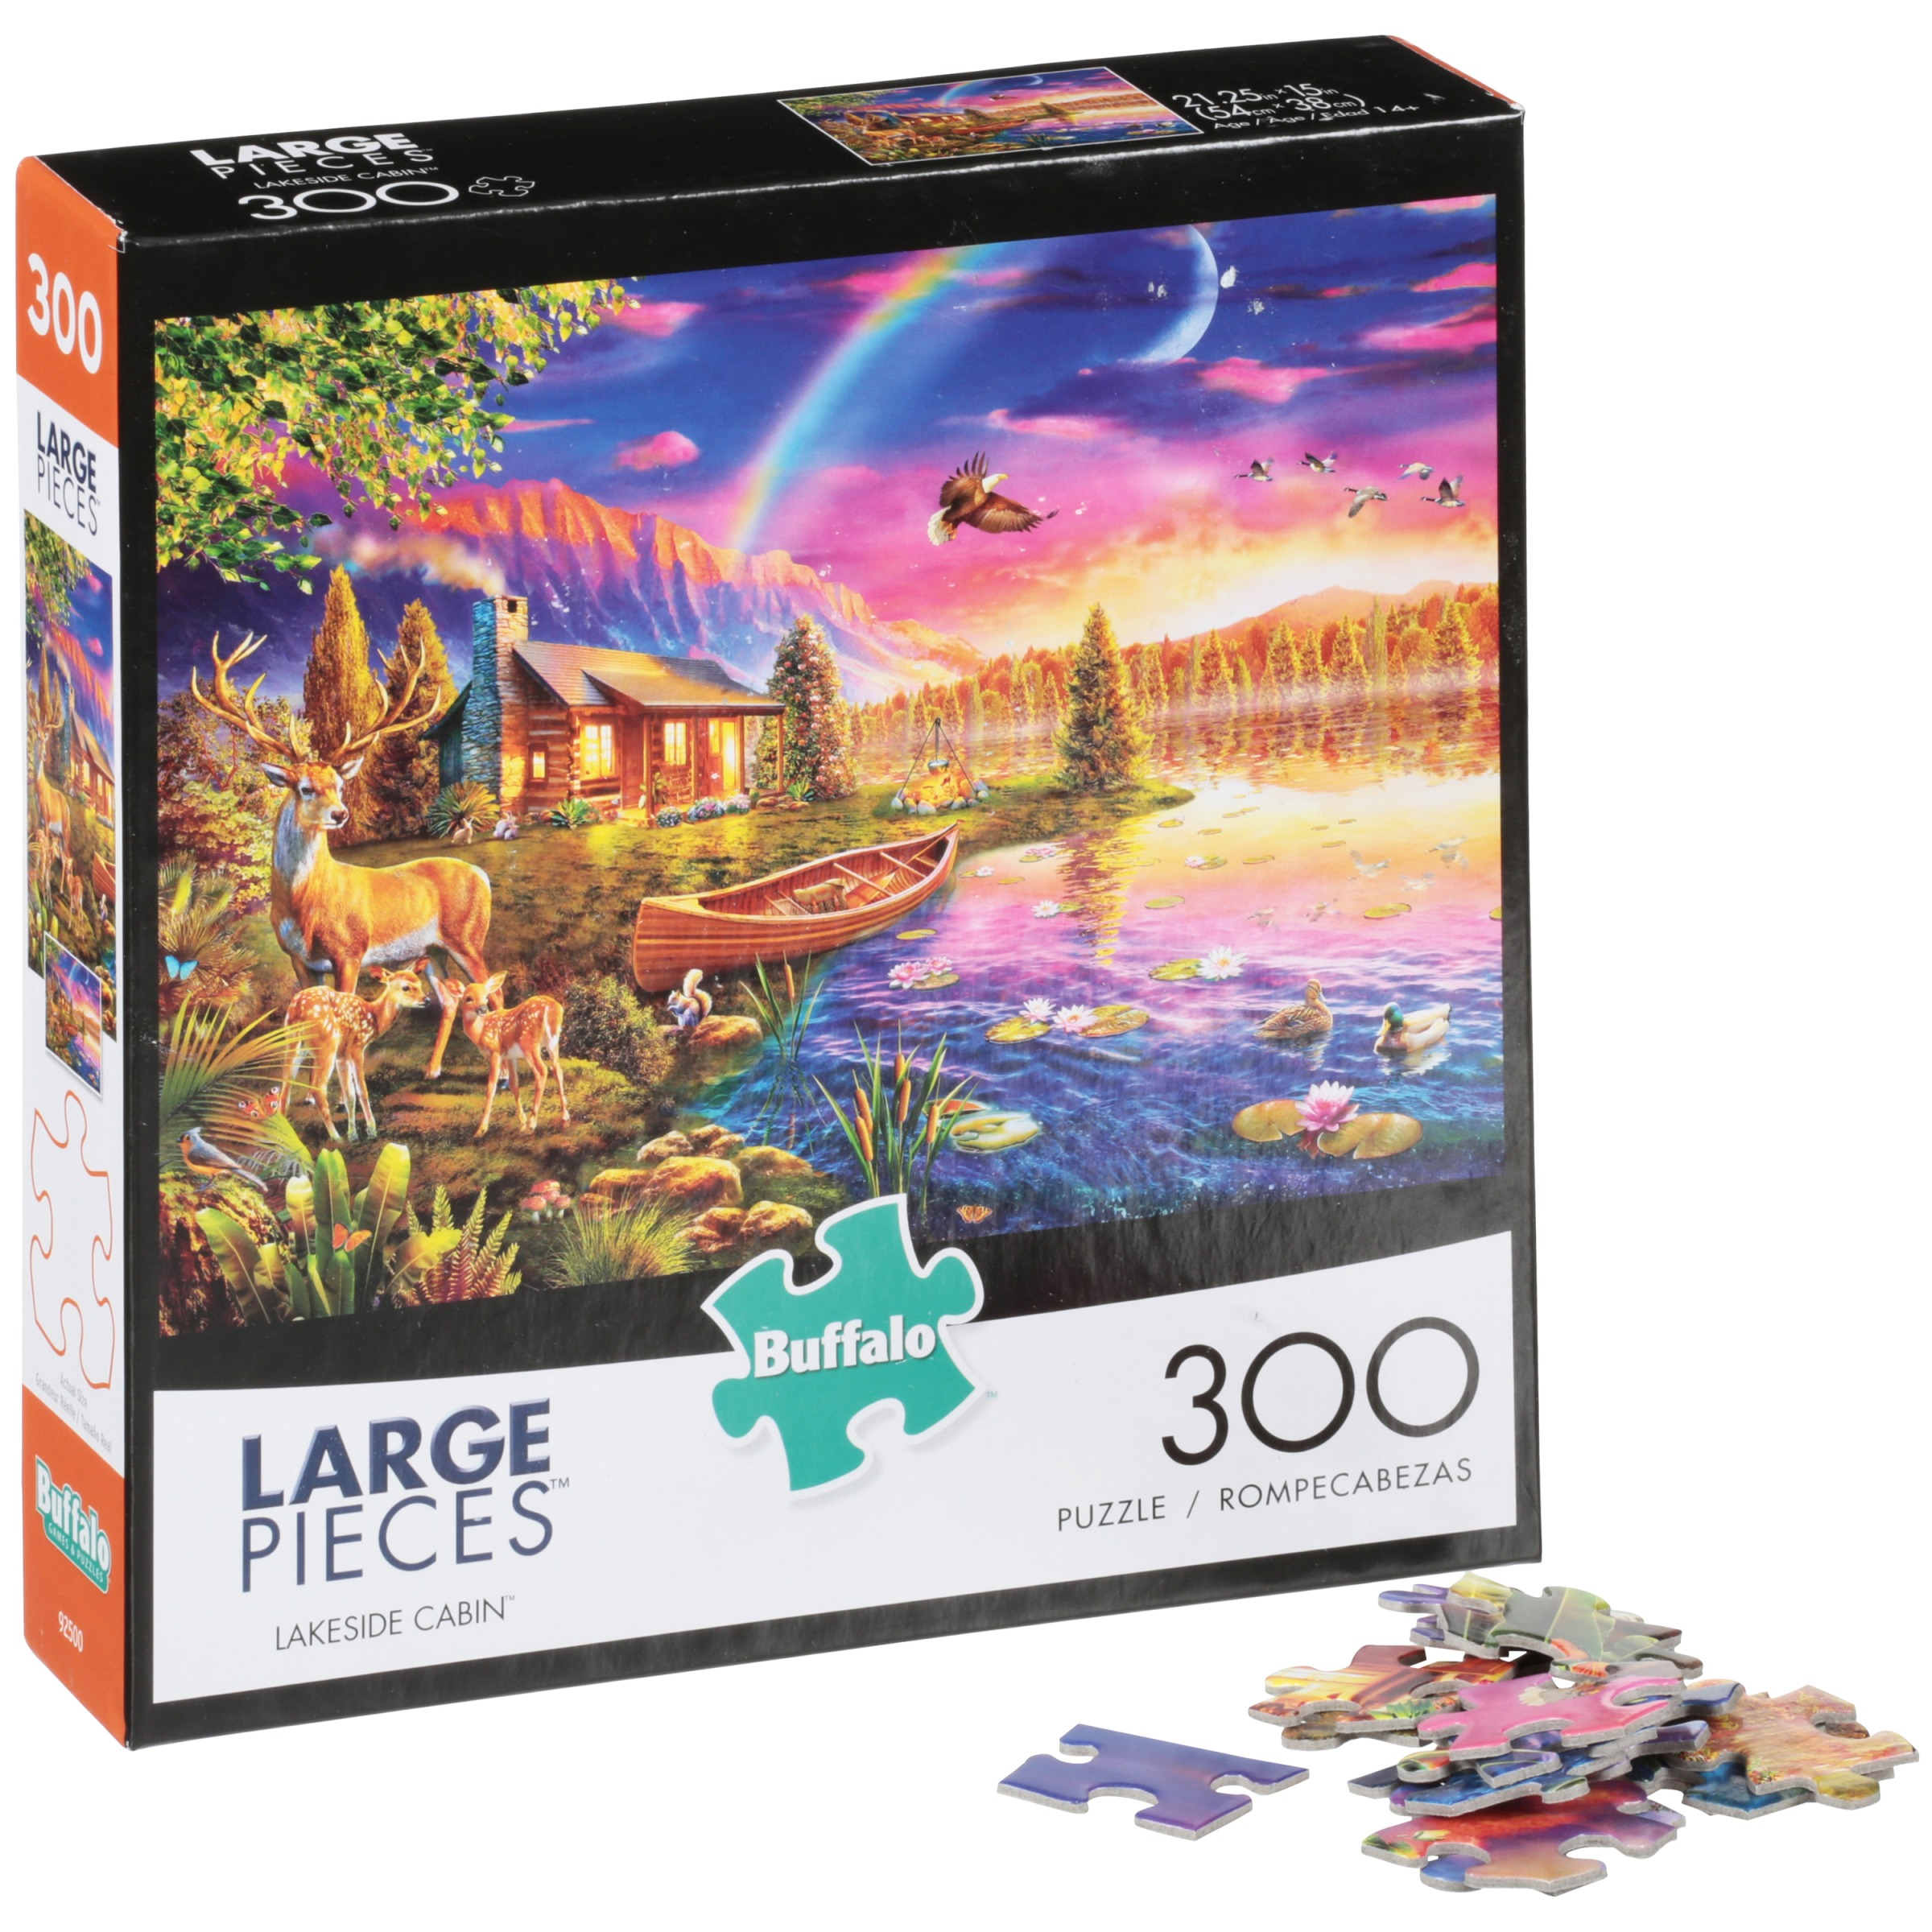 Buffalo Large Pieces Lakeside Cabin 300 pc Puzzle by Buffalo Games, LLC